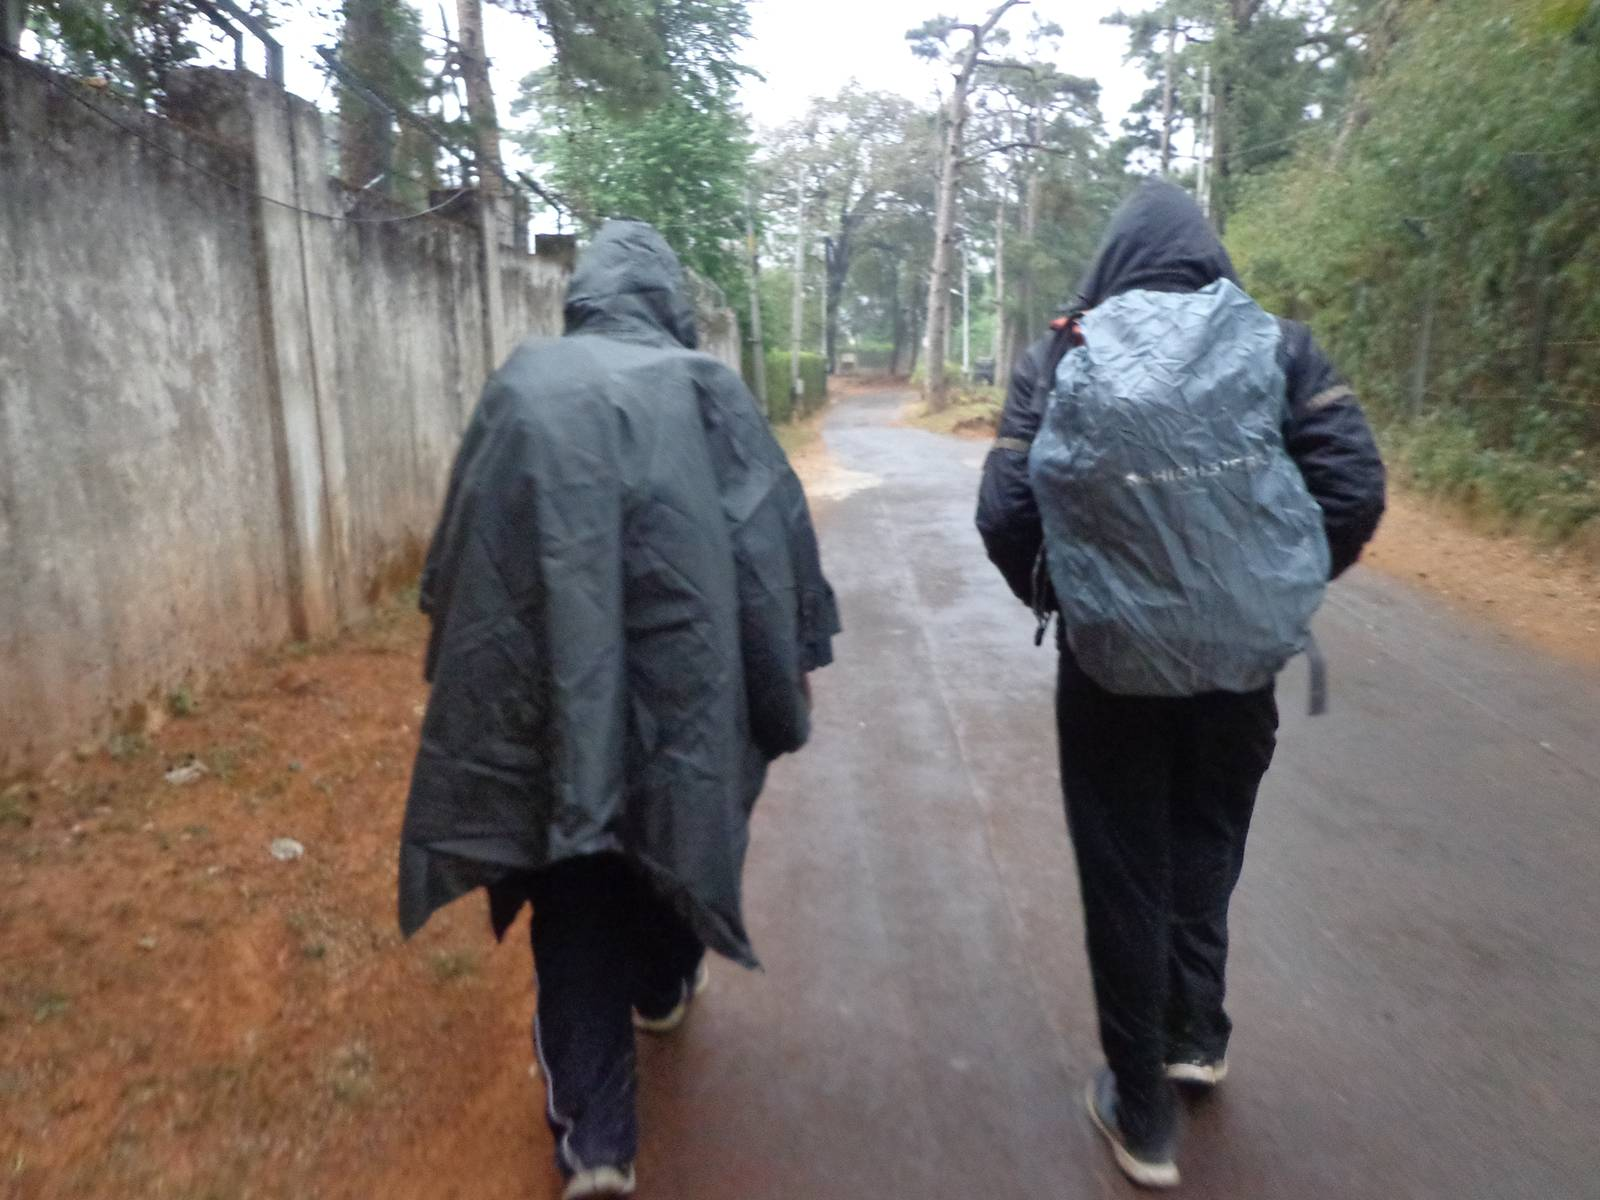 Nandy and Gowri Sankar with their rainwears on.